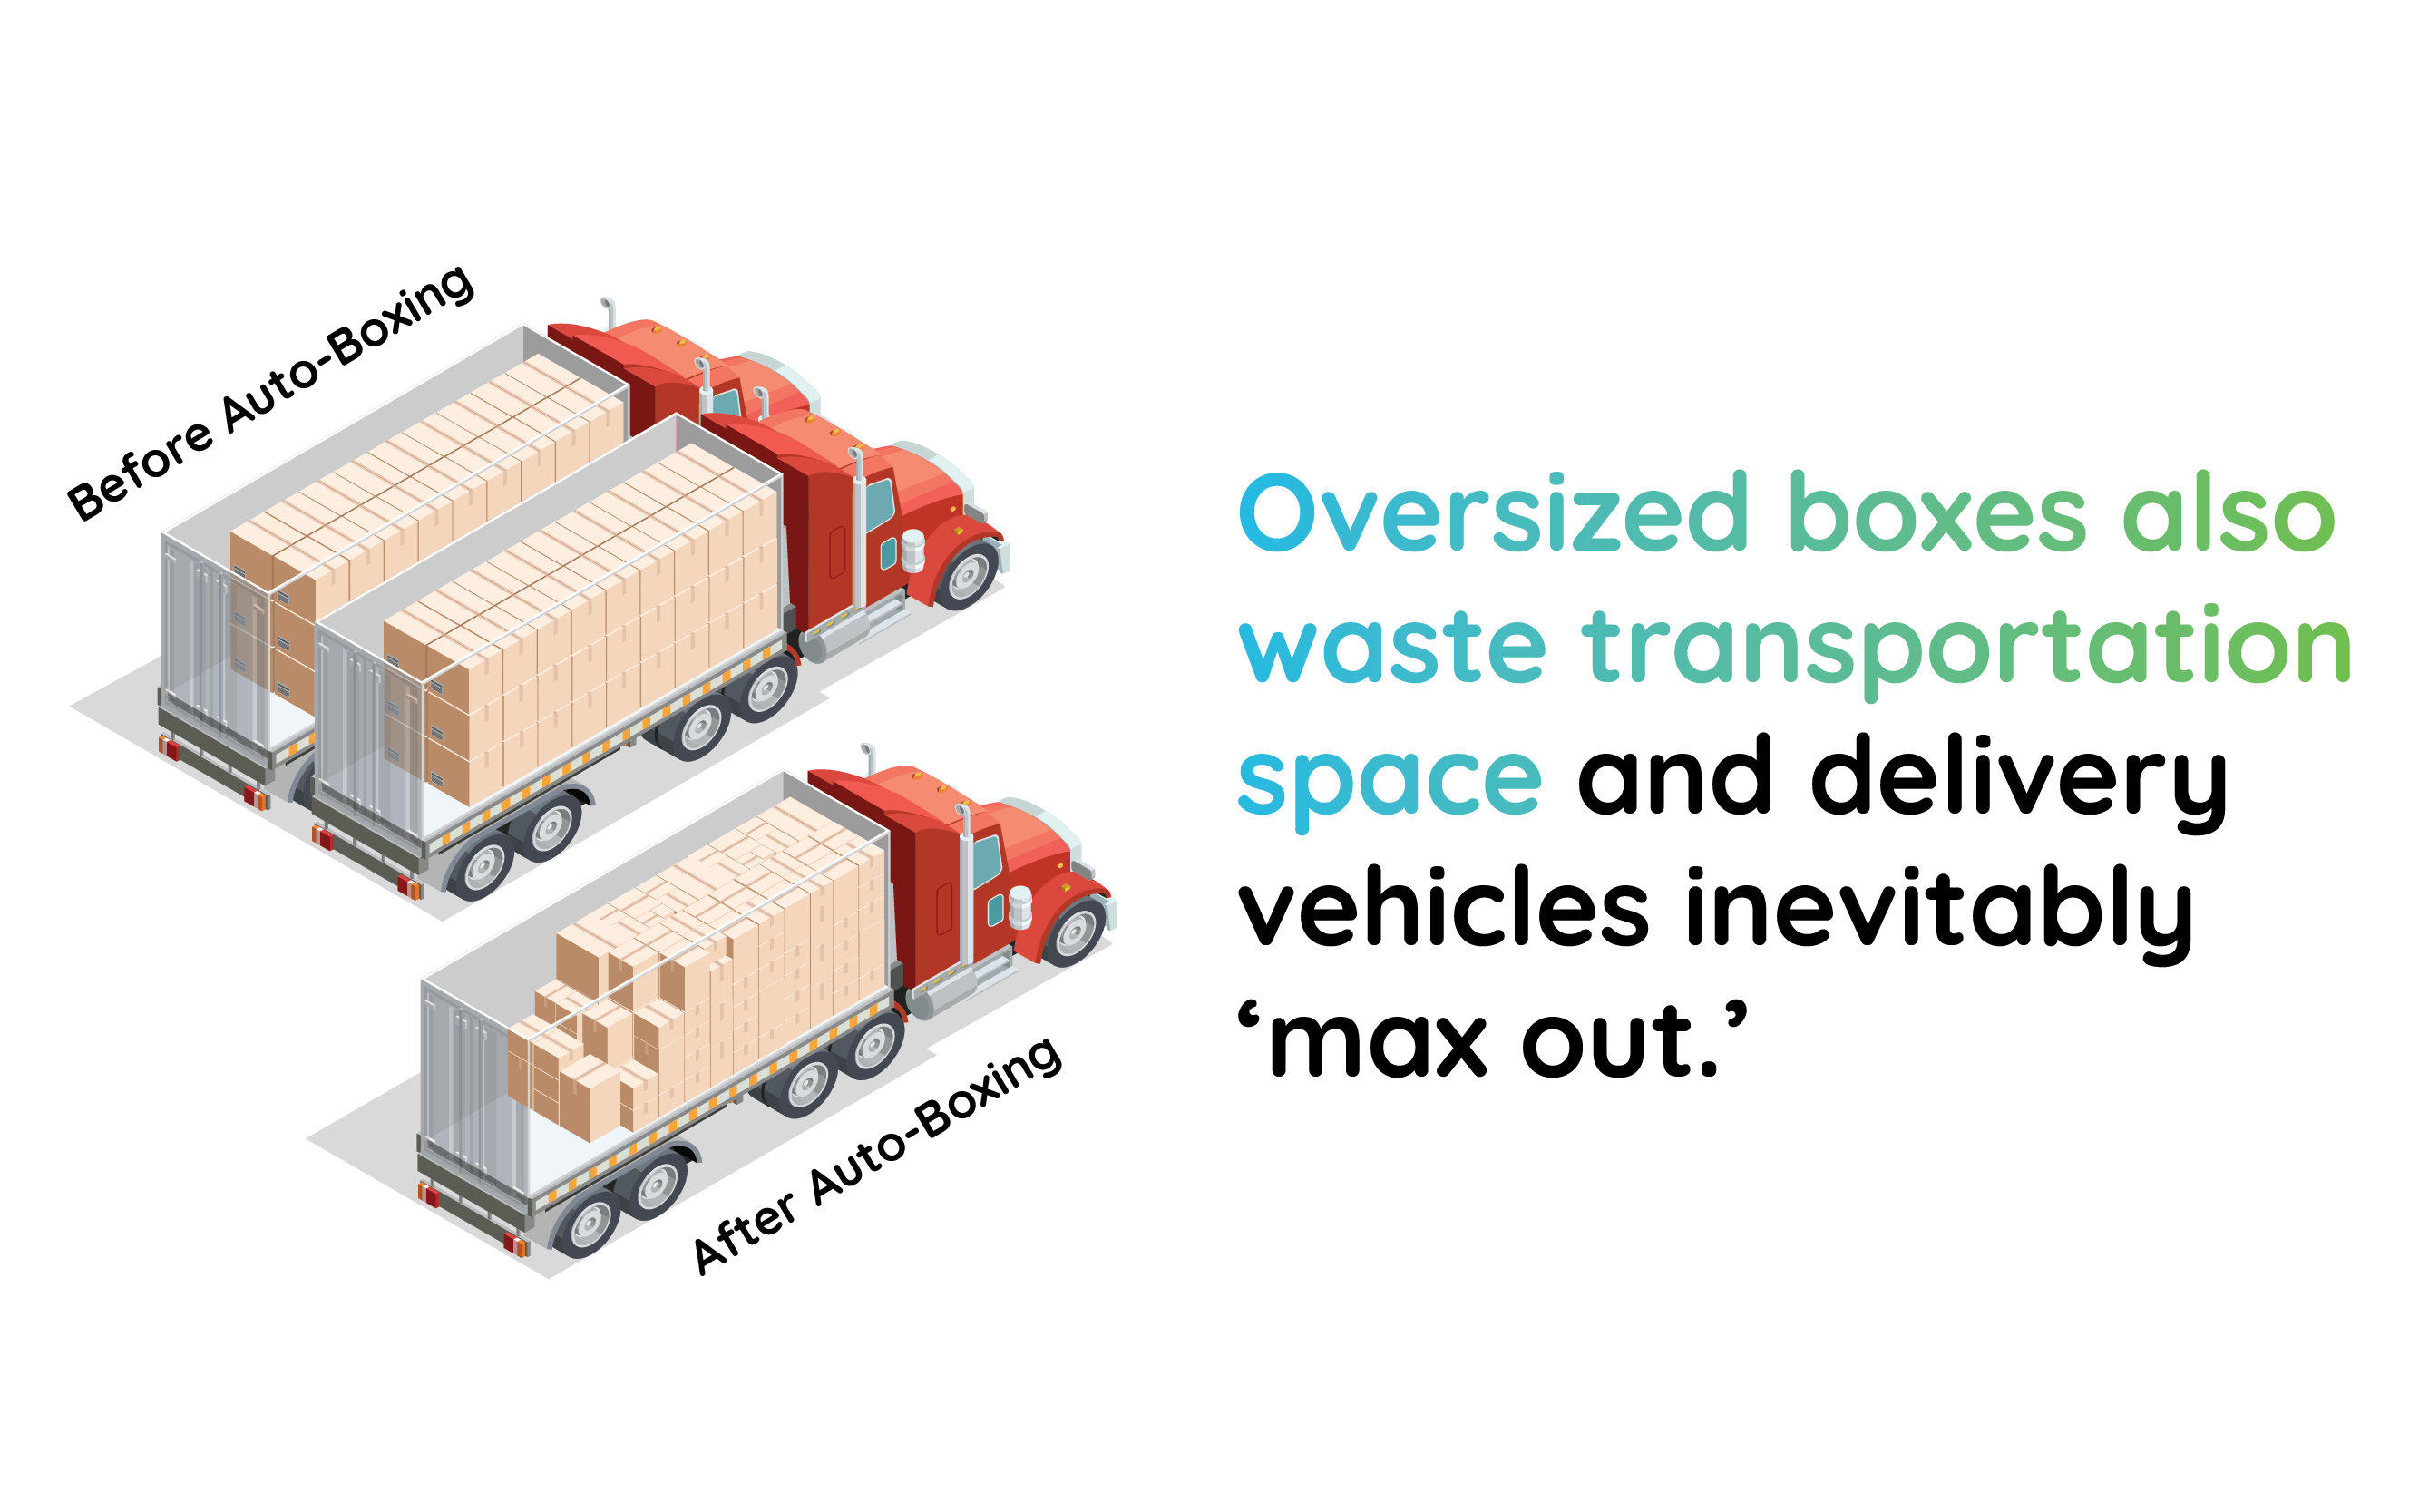 Oversized boxes also waste transportation space and delivery vehicles inevitably 'max out'